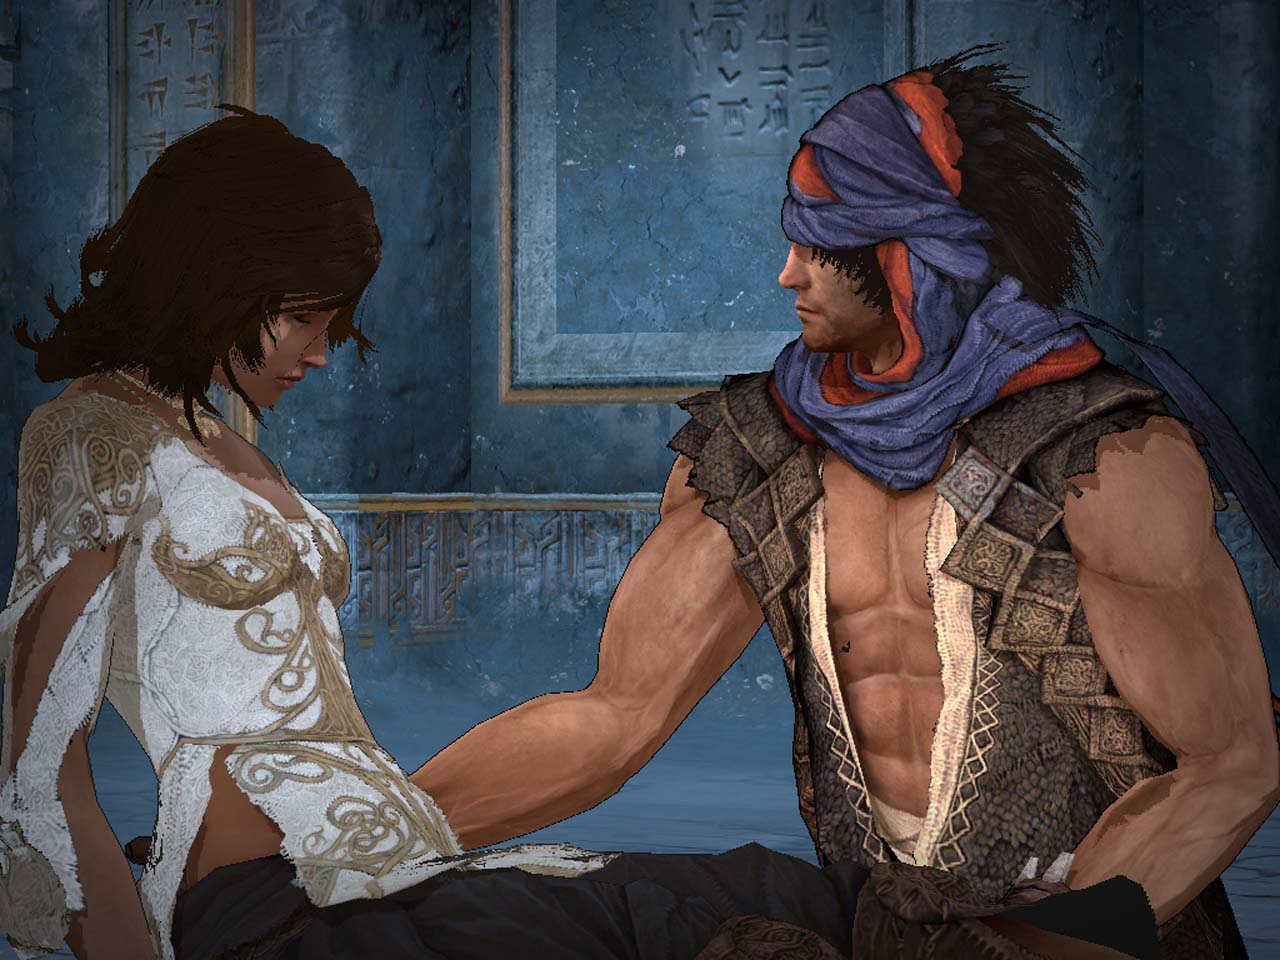 Prince of persia sexy and hot softcore download